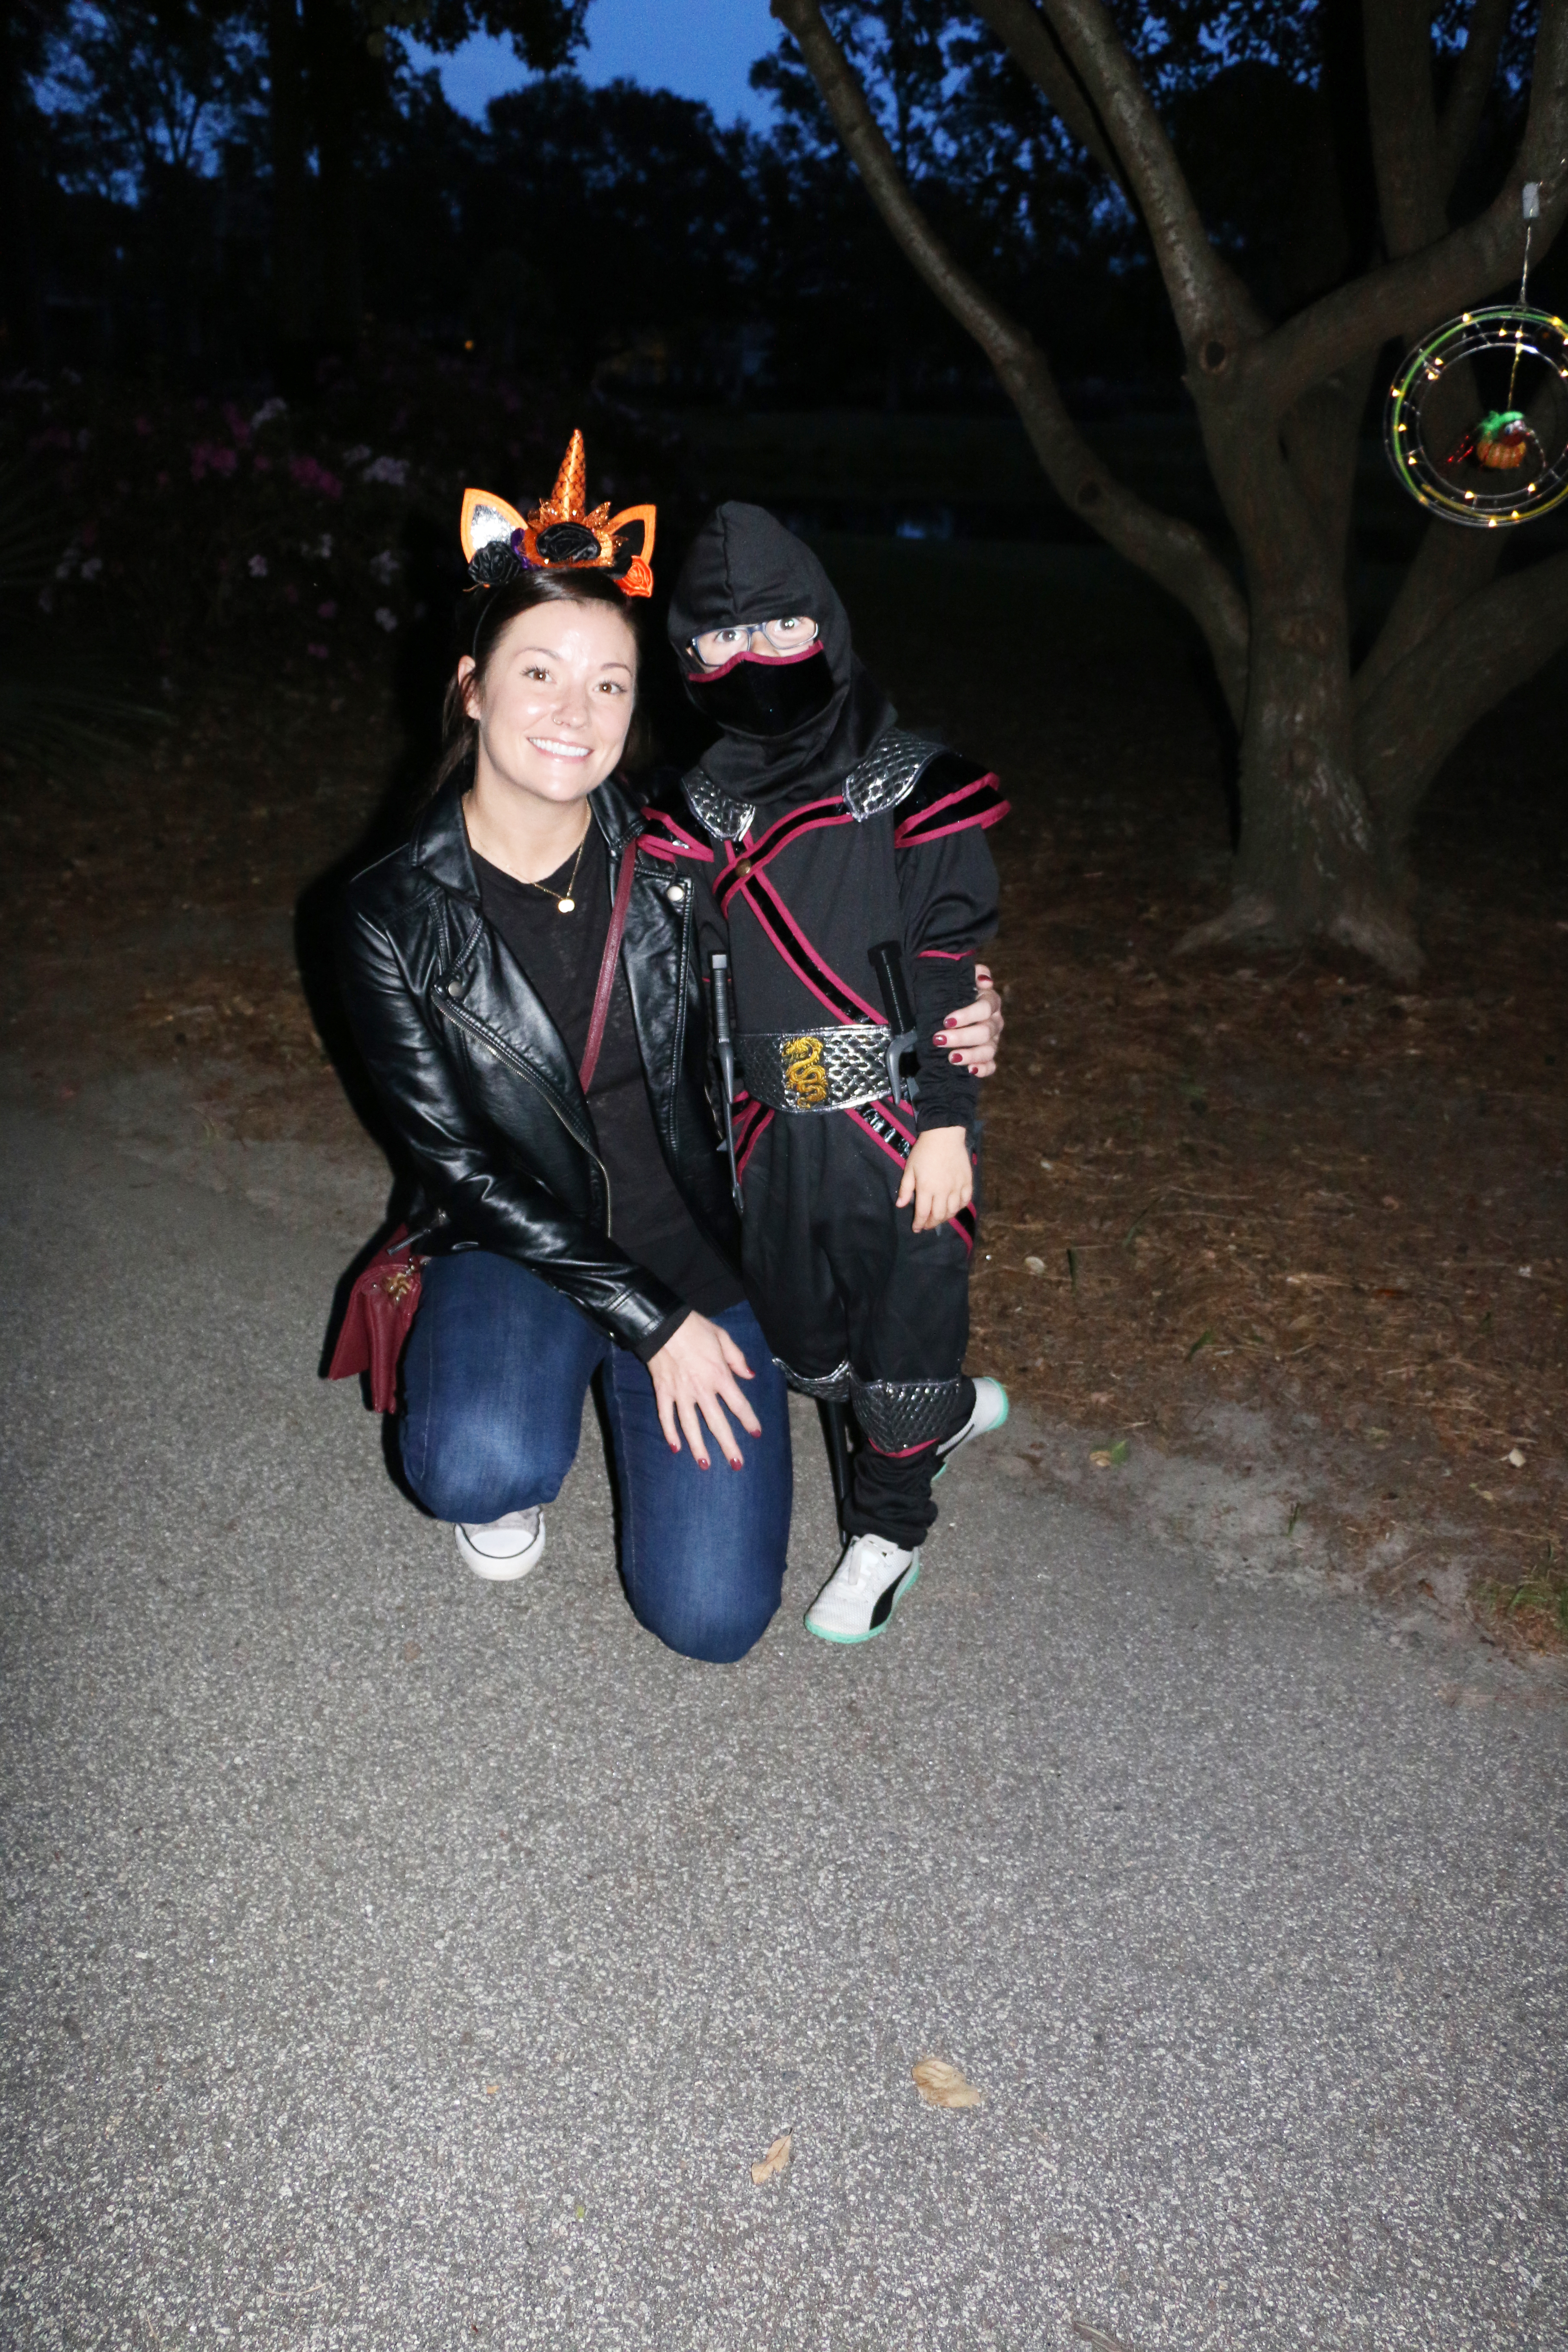 Kelly the cat and Calvin the Ninja are spotted at the annual Pumpkin Walk last Saturday at Smythe Lake Park.